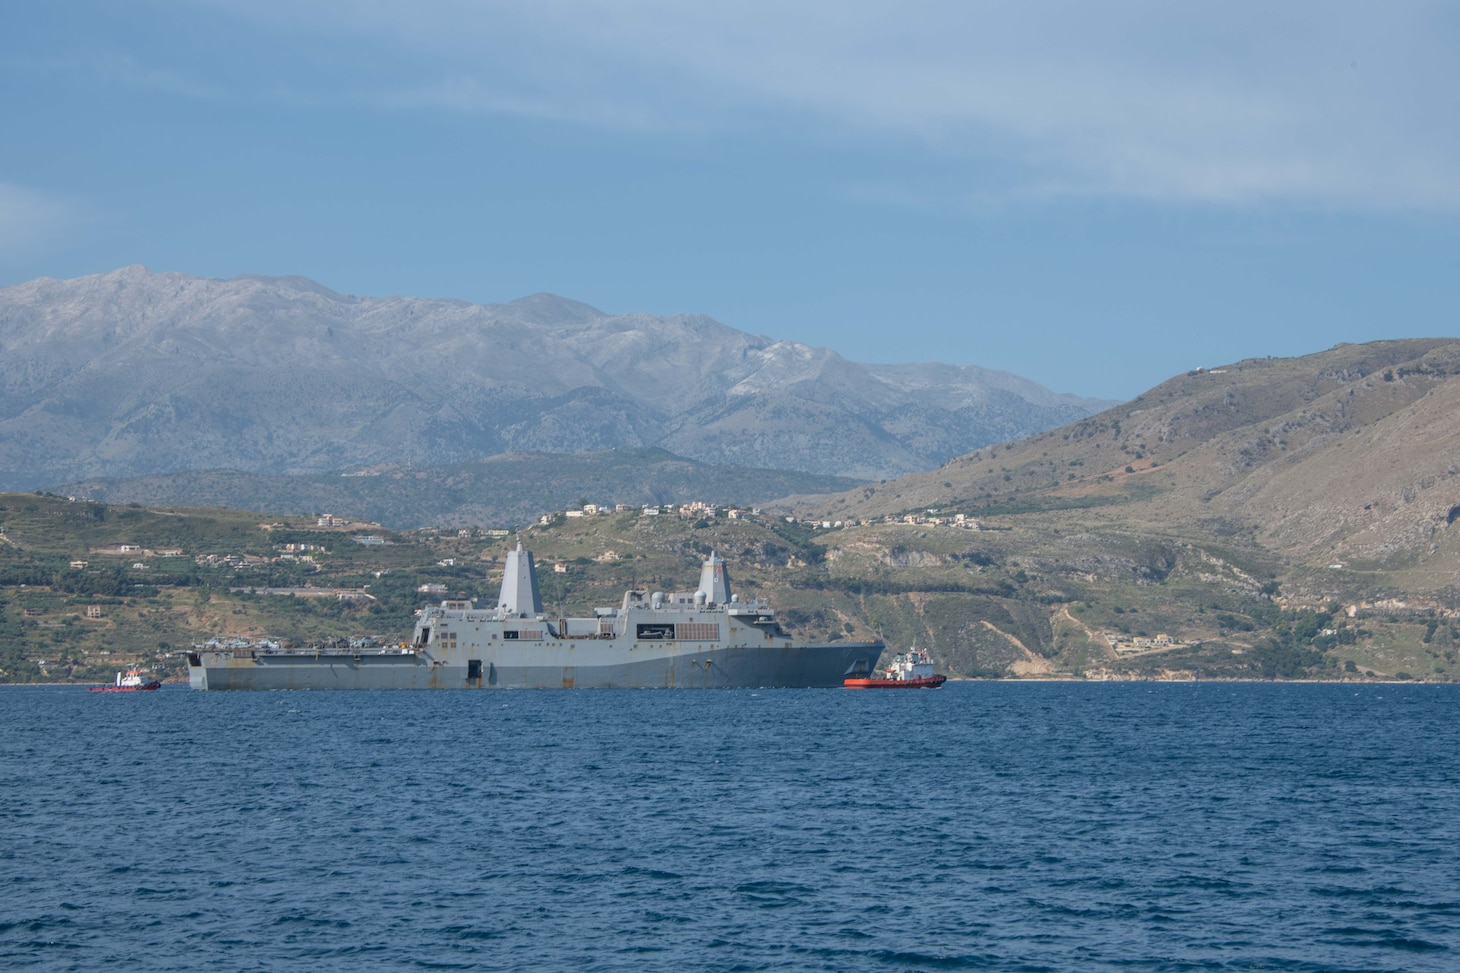 ) The amphibious transport dock ship USS San Antonio (LPD 17) arrives in Souda Bay, Greece, for a scheduled logistics and maintenance stop , May 27, 2021. San Antonio is operating in the U.S. Sixth Fleet area of operations with Amphibious Squadron 4 and the 24th Marine Expeditionary Unit (MEU) as part of the Iwo Jima Amphibious Readiness Group. NSA Souda Bay is an operational ashore base that enables U.S., allied, and partner nation forces to be where they are needed when they are needed to ensure security and stability in Europe, Africa, and Southwest Asia.